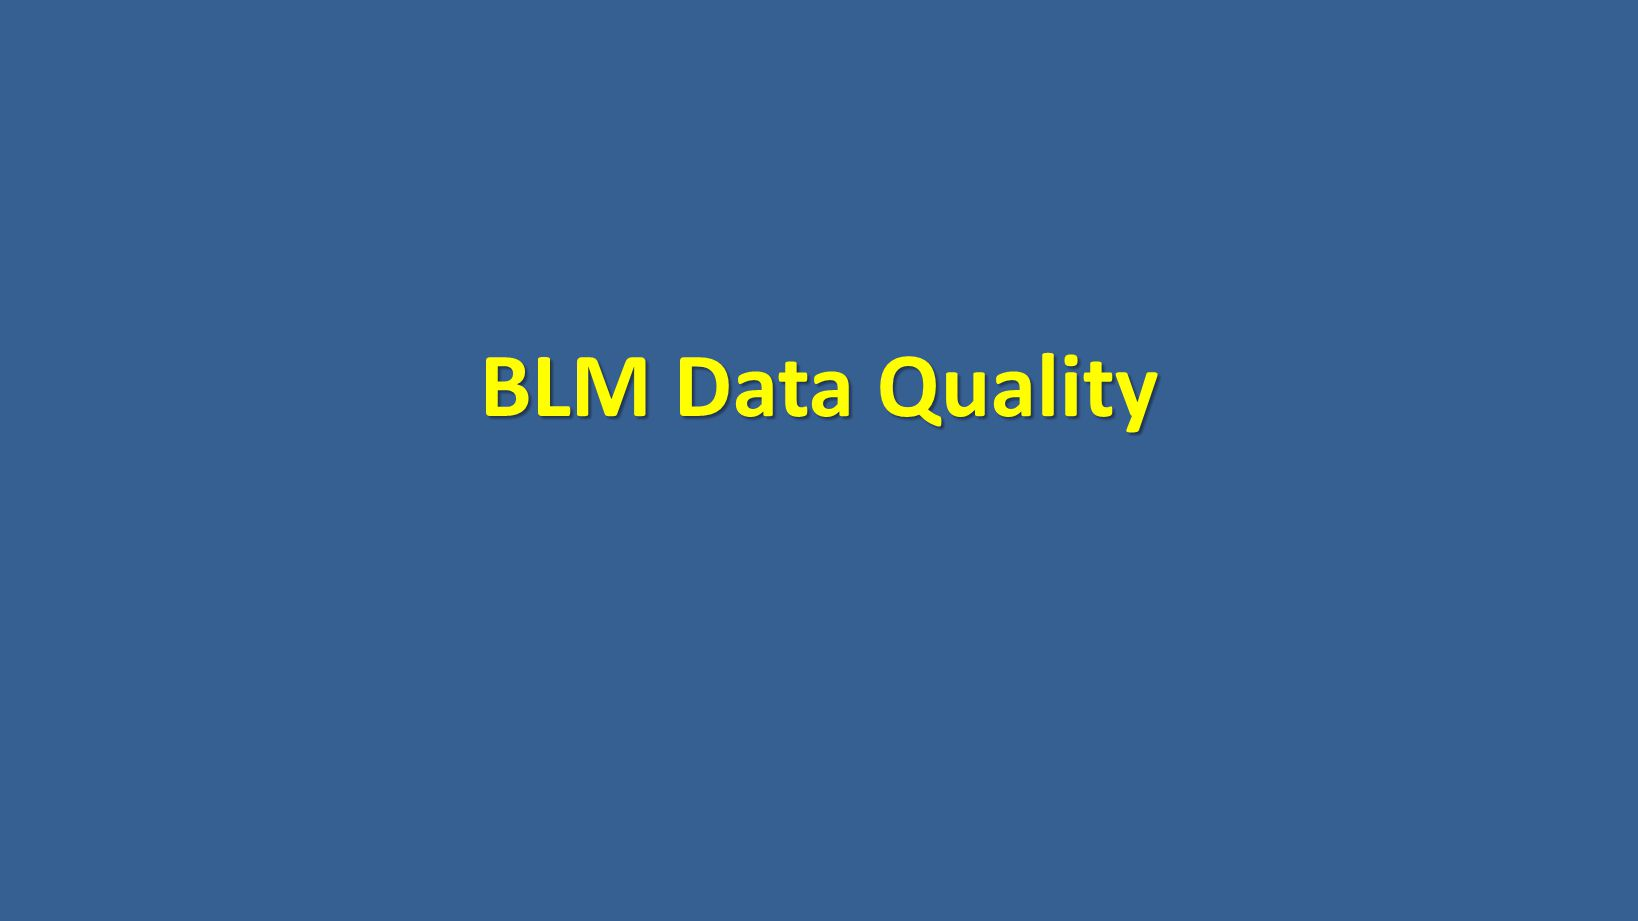 BLM Data Quality